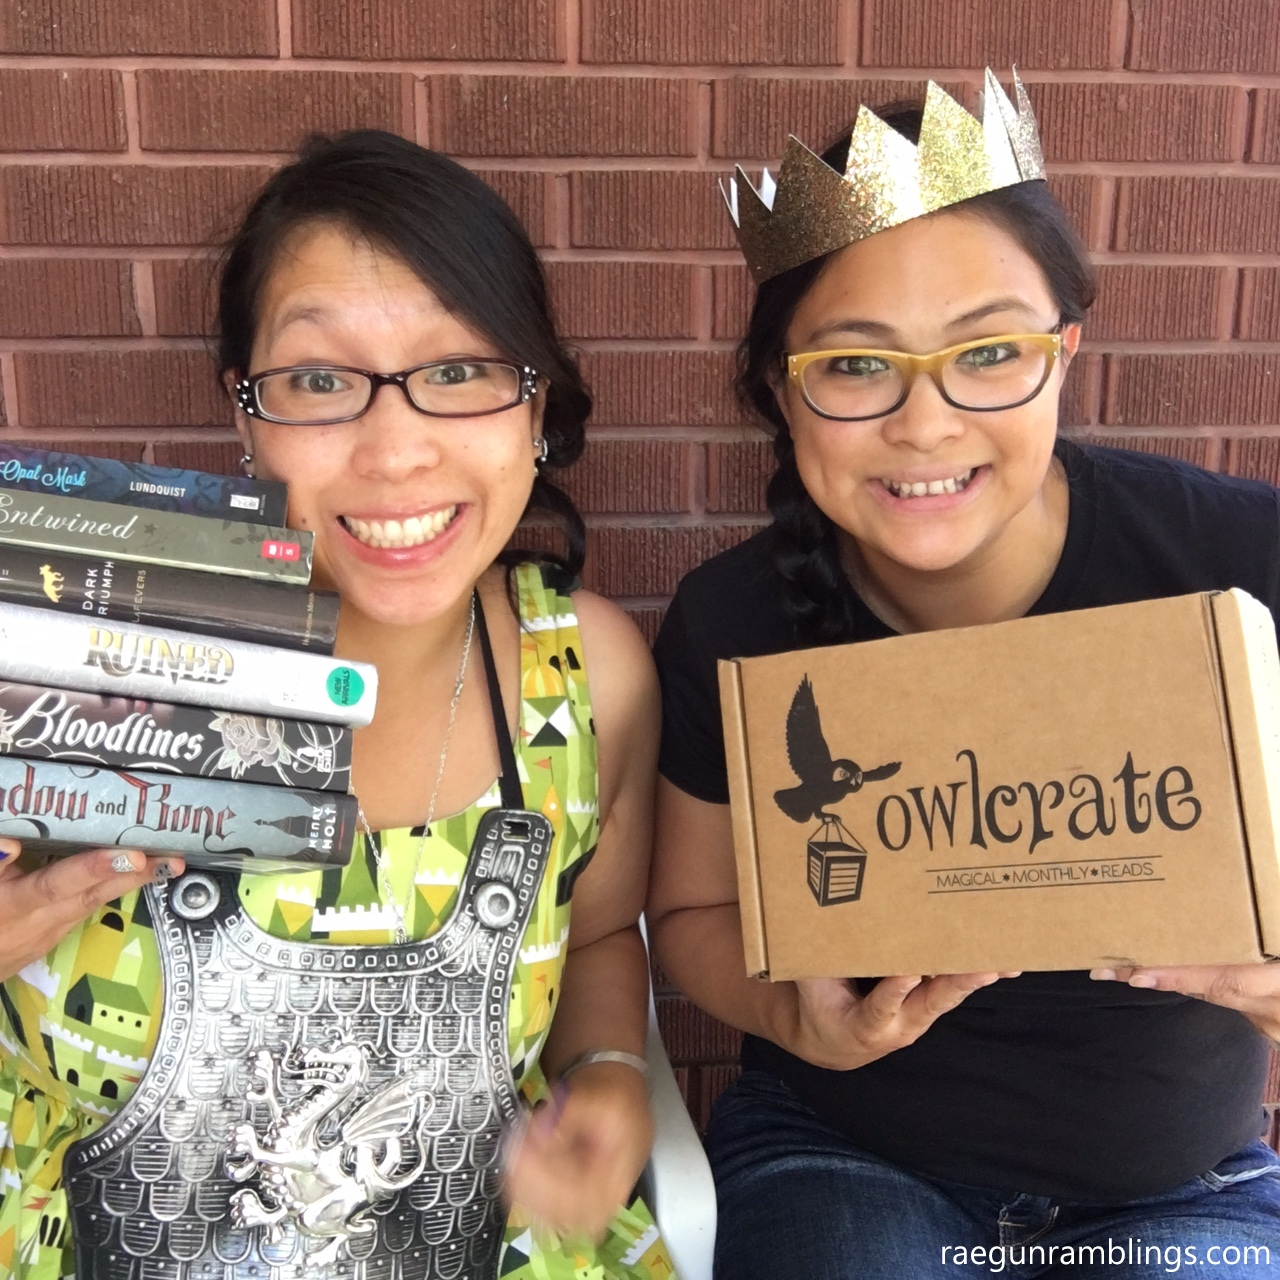 Owl Crate young adult literature bookish subscription box this sounds awesome and like a great gift idea.